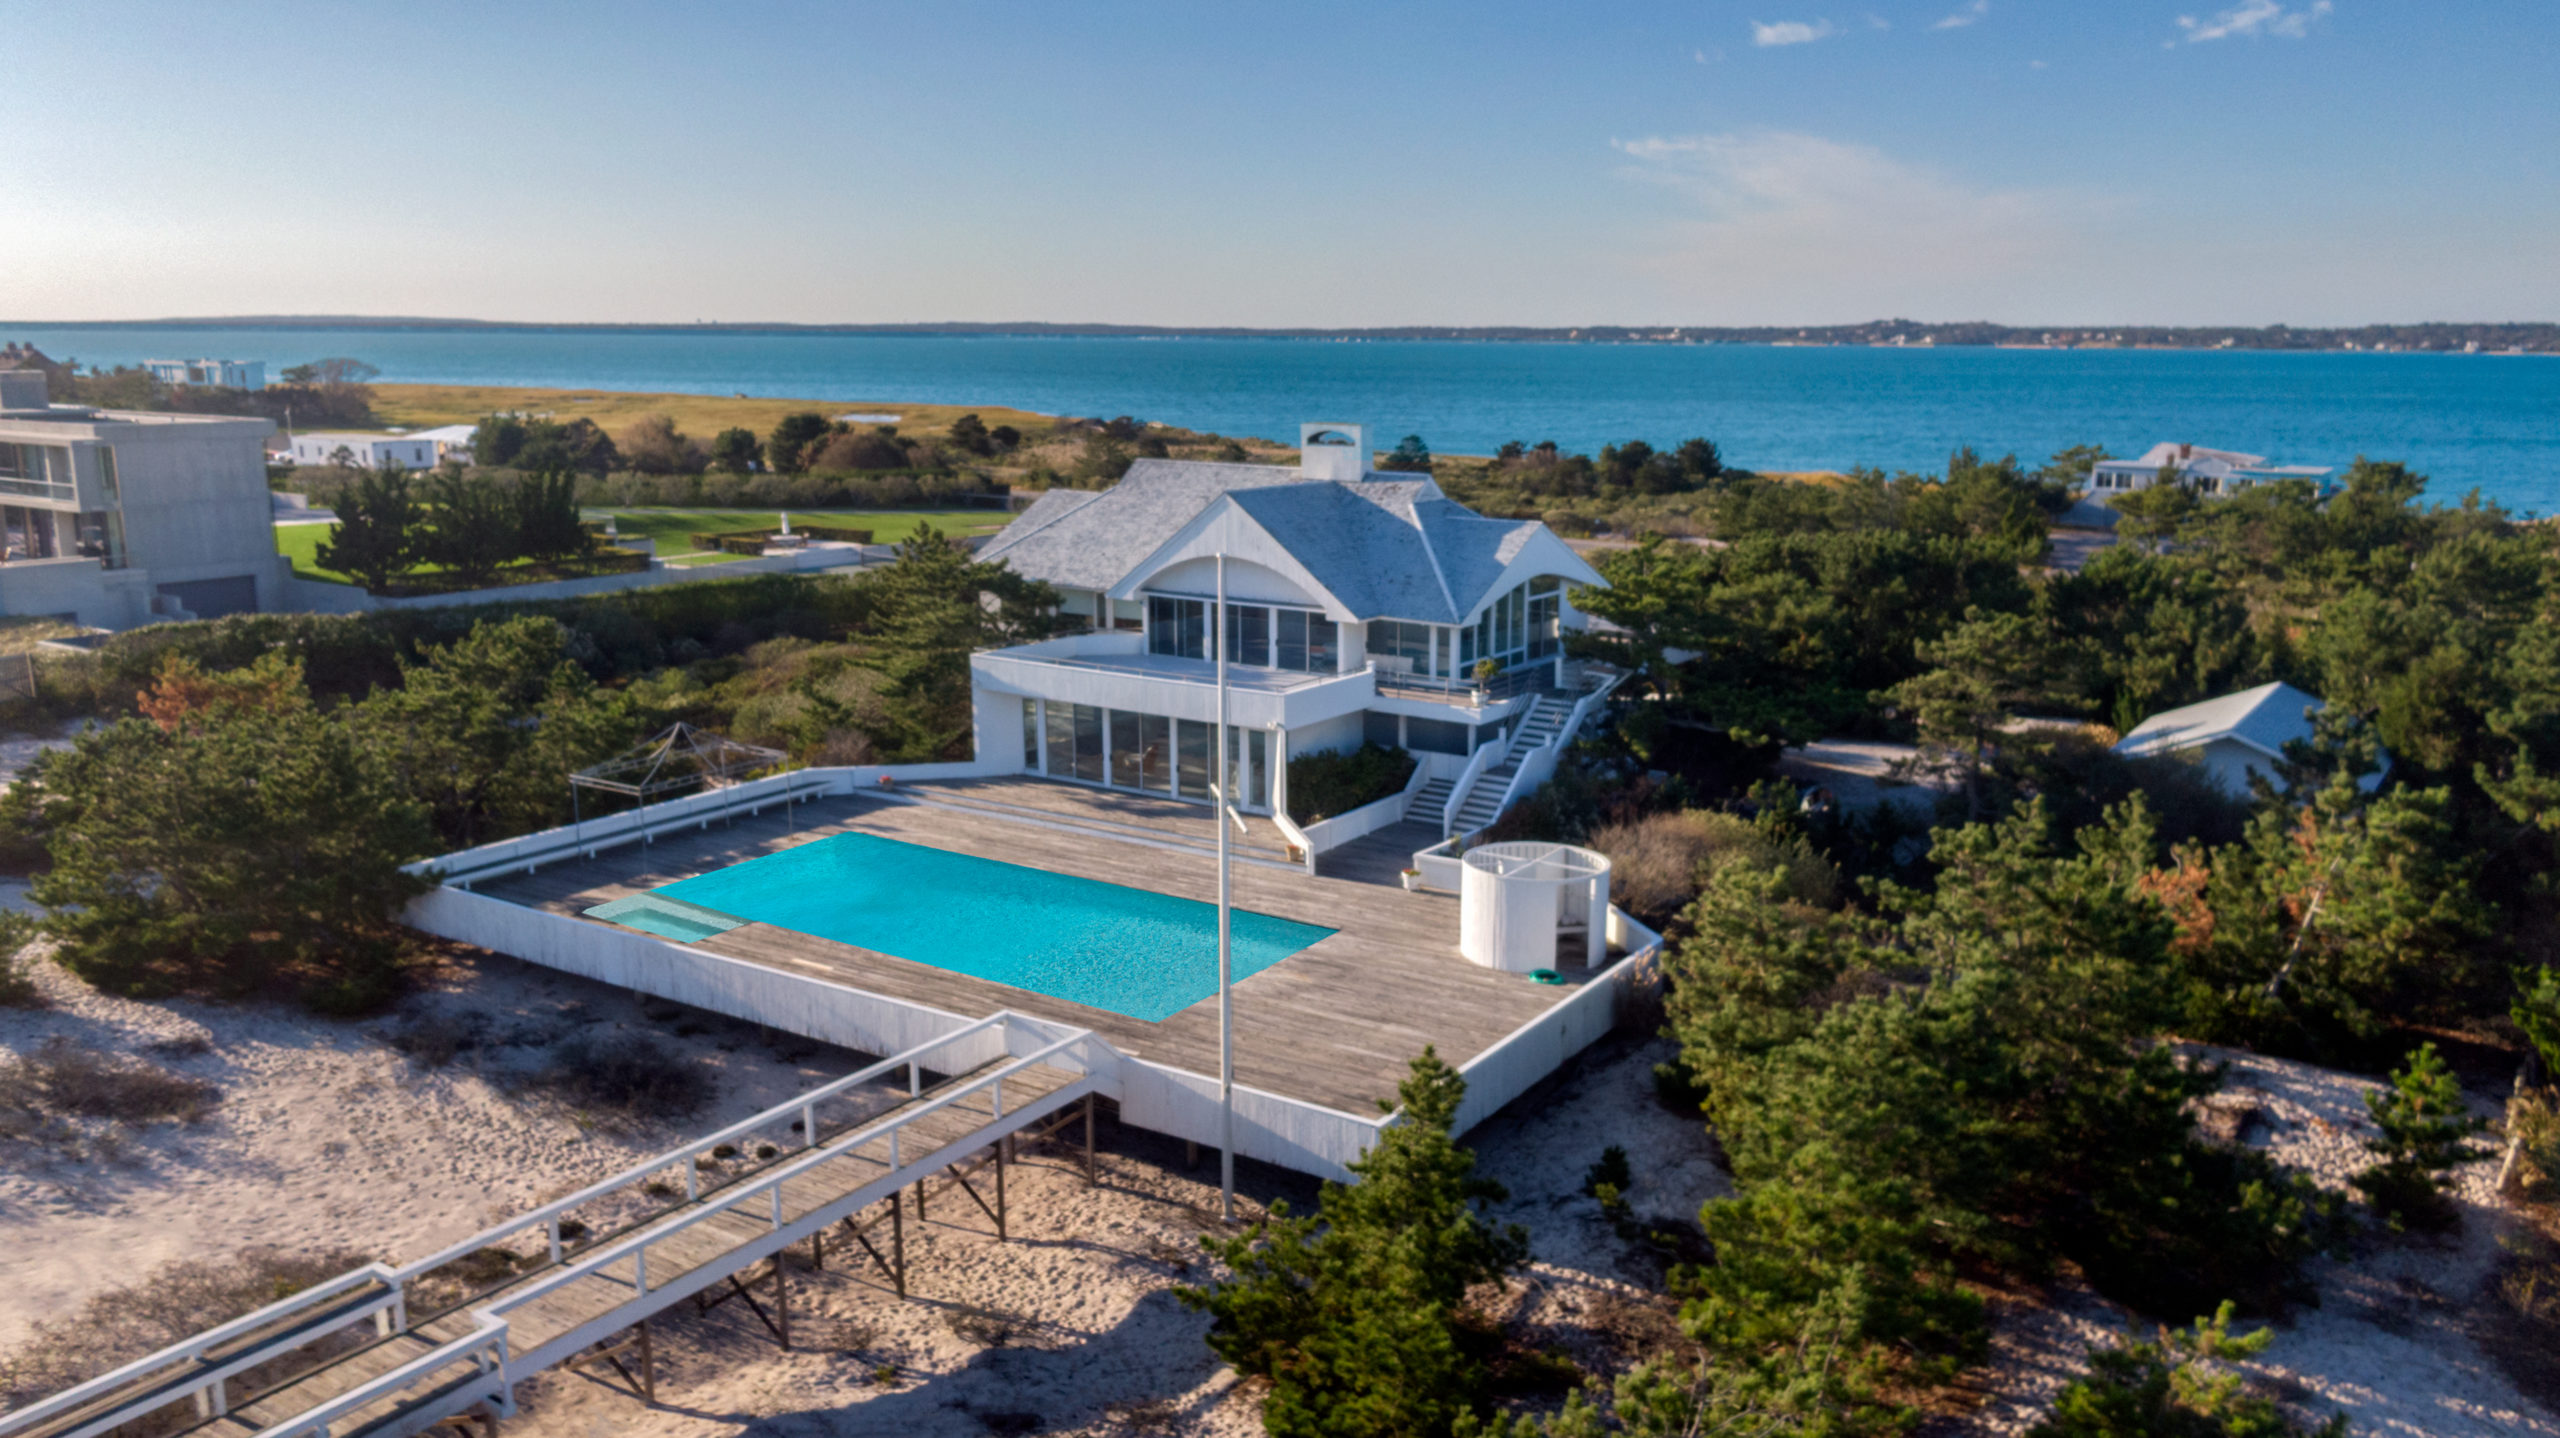 In Southampton Village, 1210 Meadow Lane recently entered contract with a last asking price of $37 million.